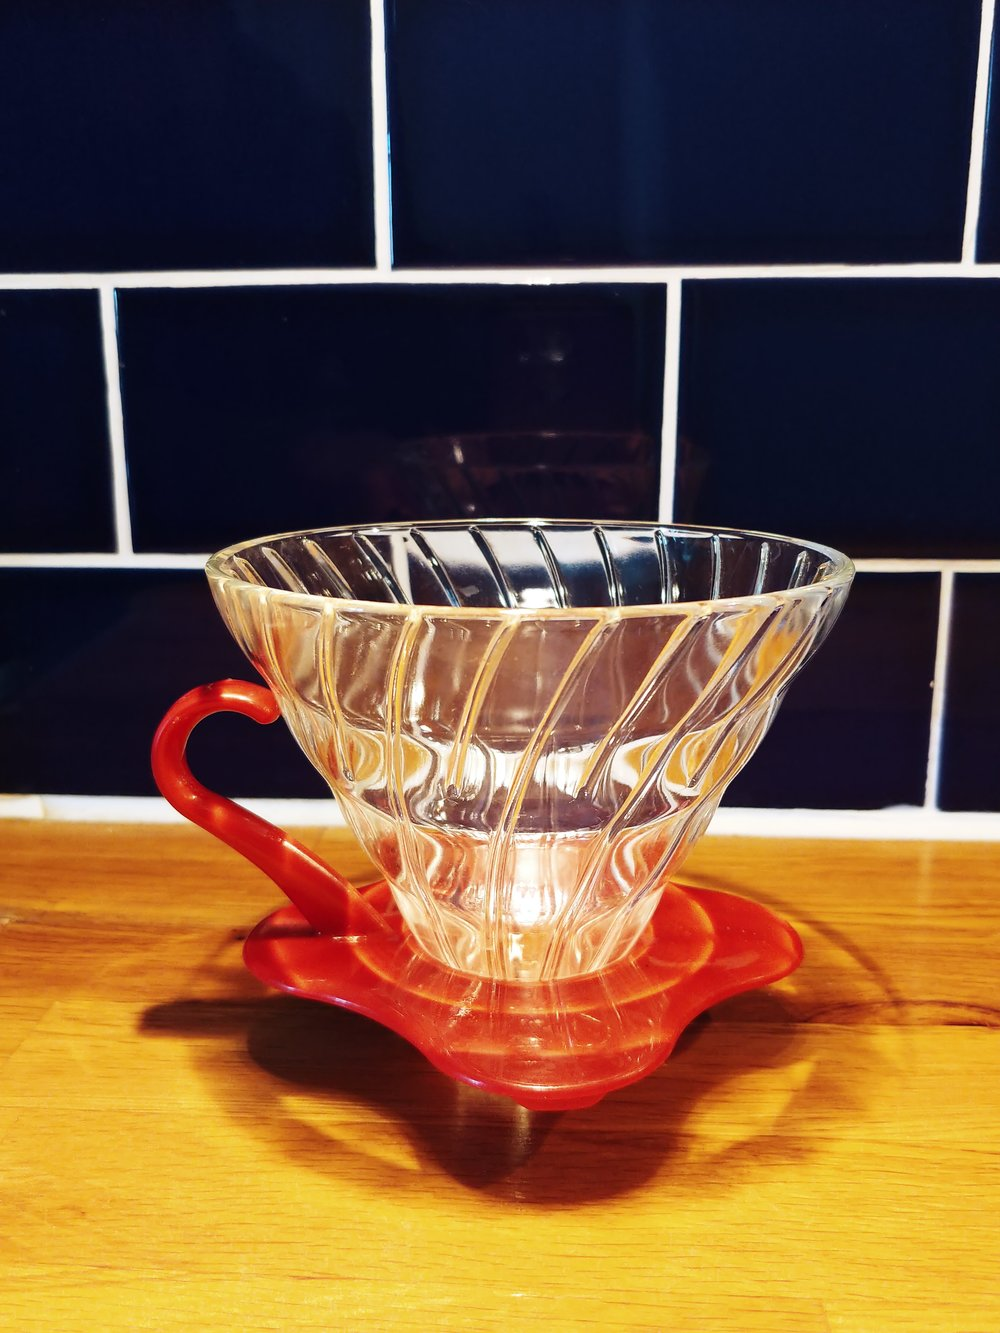 The Hario V60 Pour Over